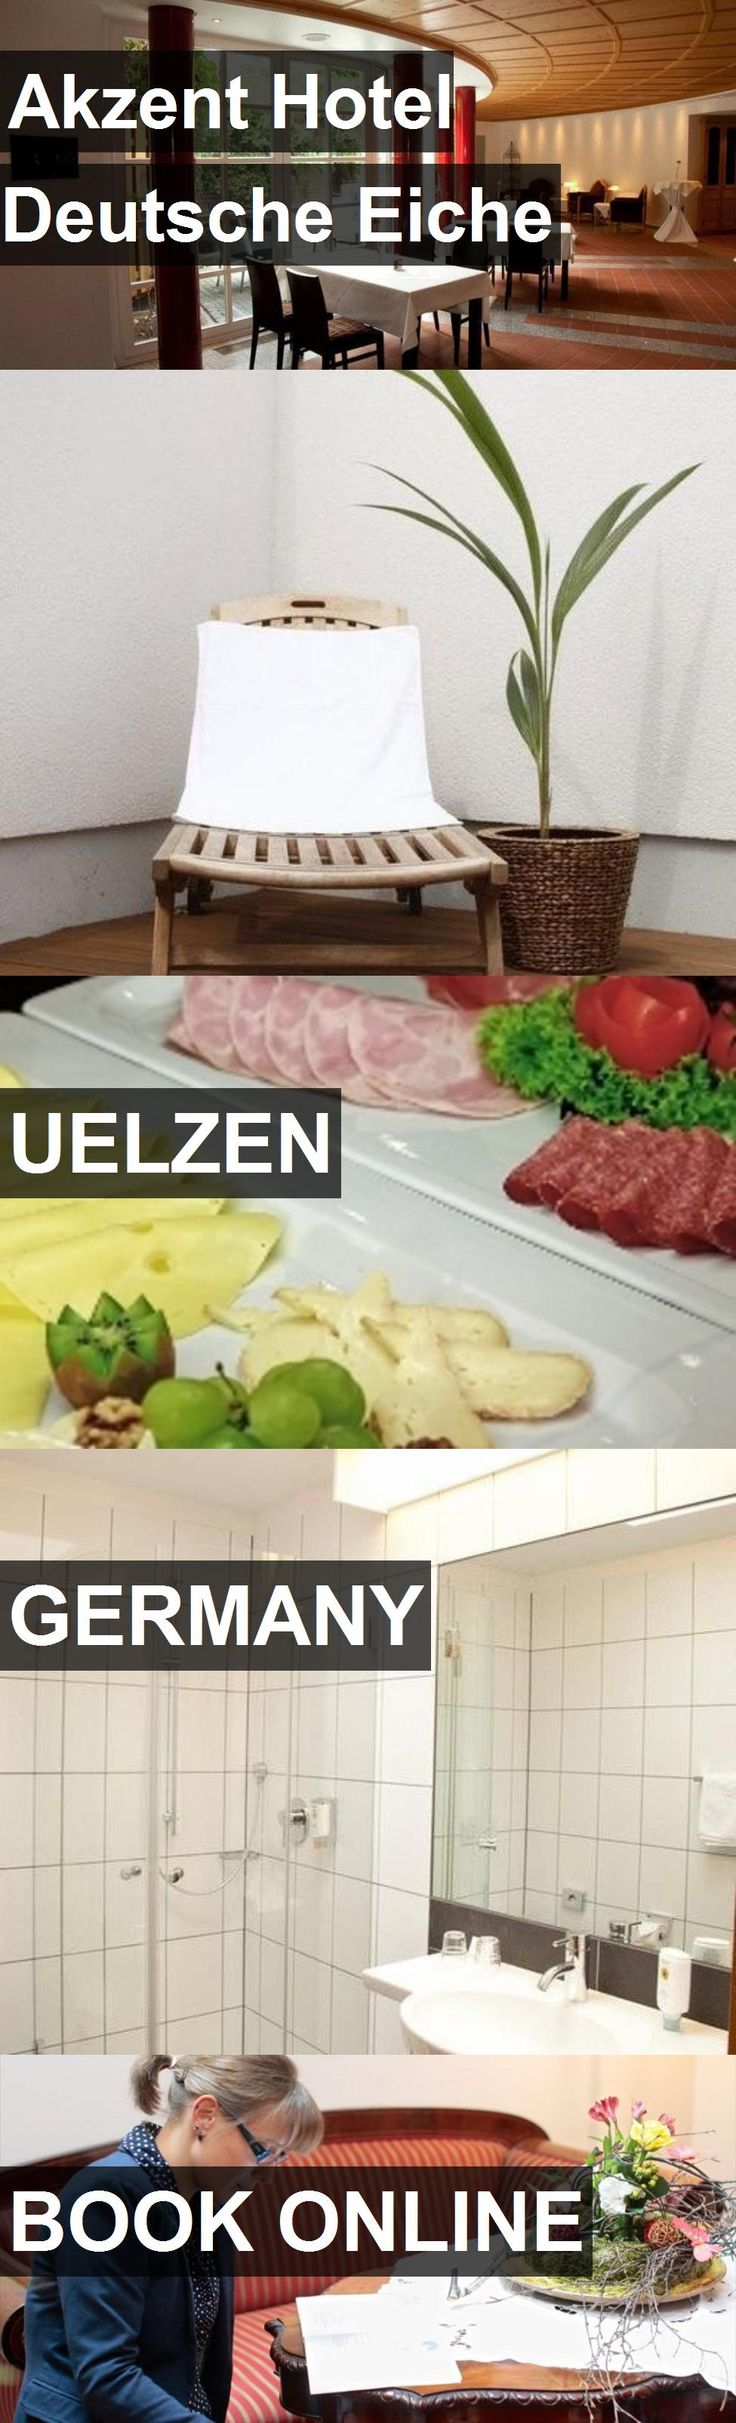 Hotel Akzent Hotel Deutsche Eiche in Uelzen, Germany. For more information, photos, reviews and best prices please follow the link. #Germany #Uelzen #AkzentHotelDeutscheEiche #hotel #travel #vacation